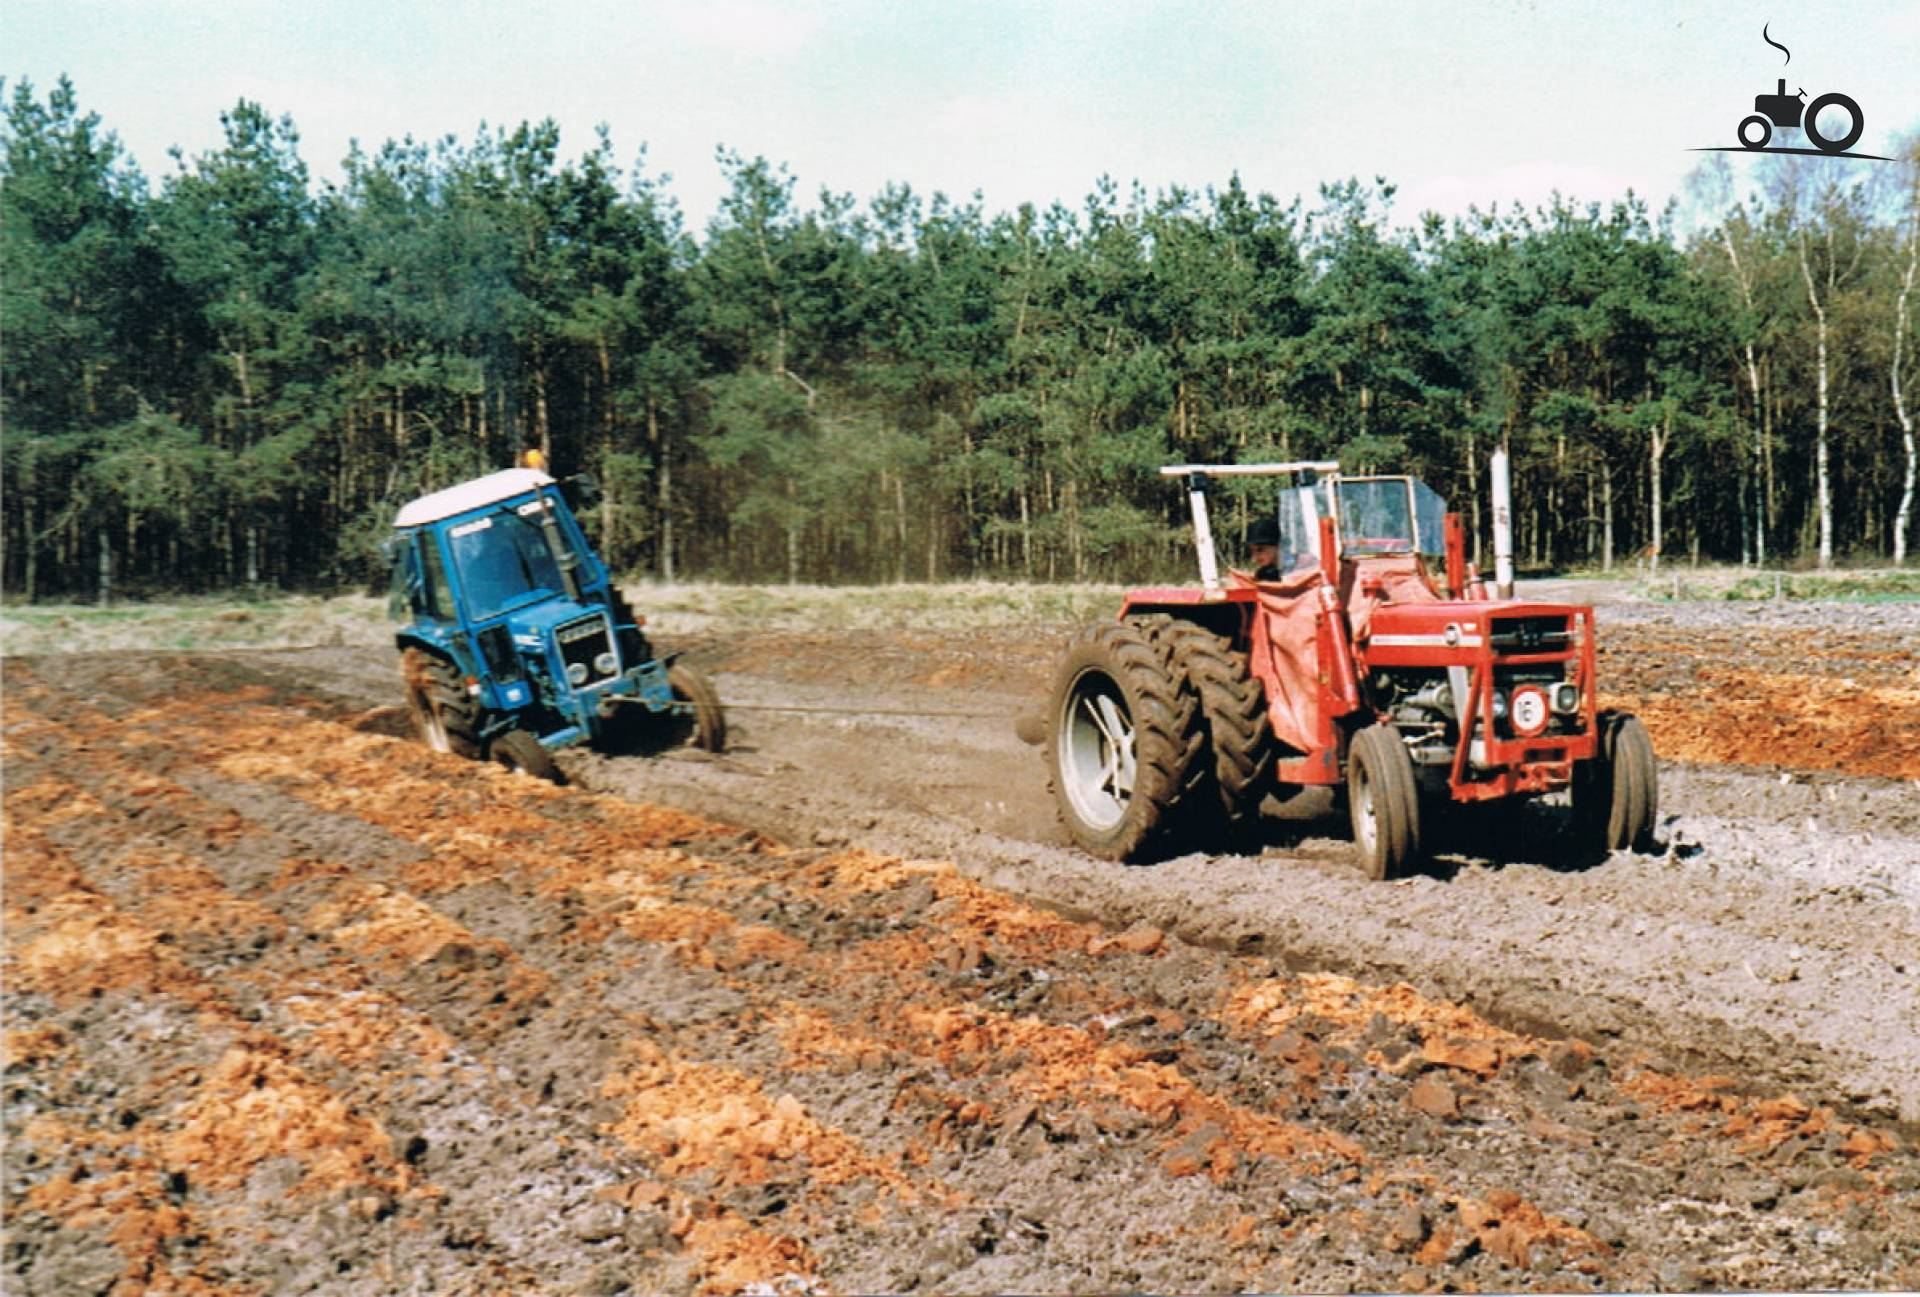 Massey Ferguson 135 Specs : Massey ferguson specs and data everything about the